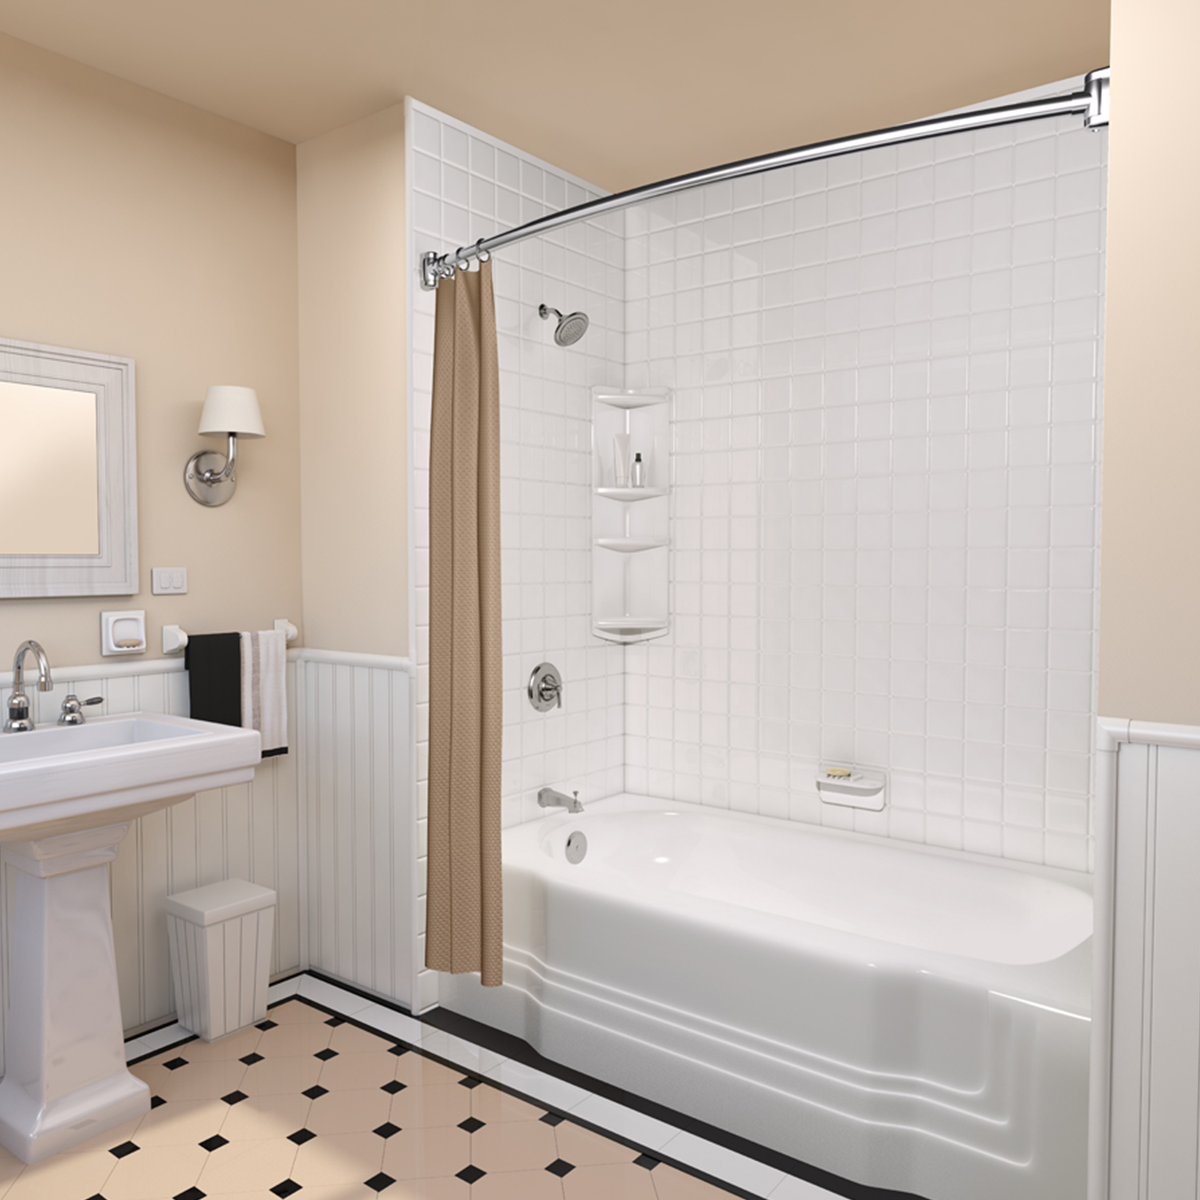 A Bath Fitter Remodel Makes Your Entire Bathroom Feel New